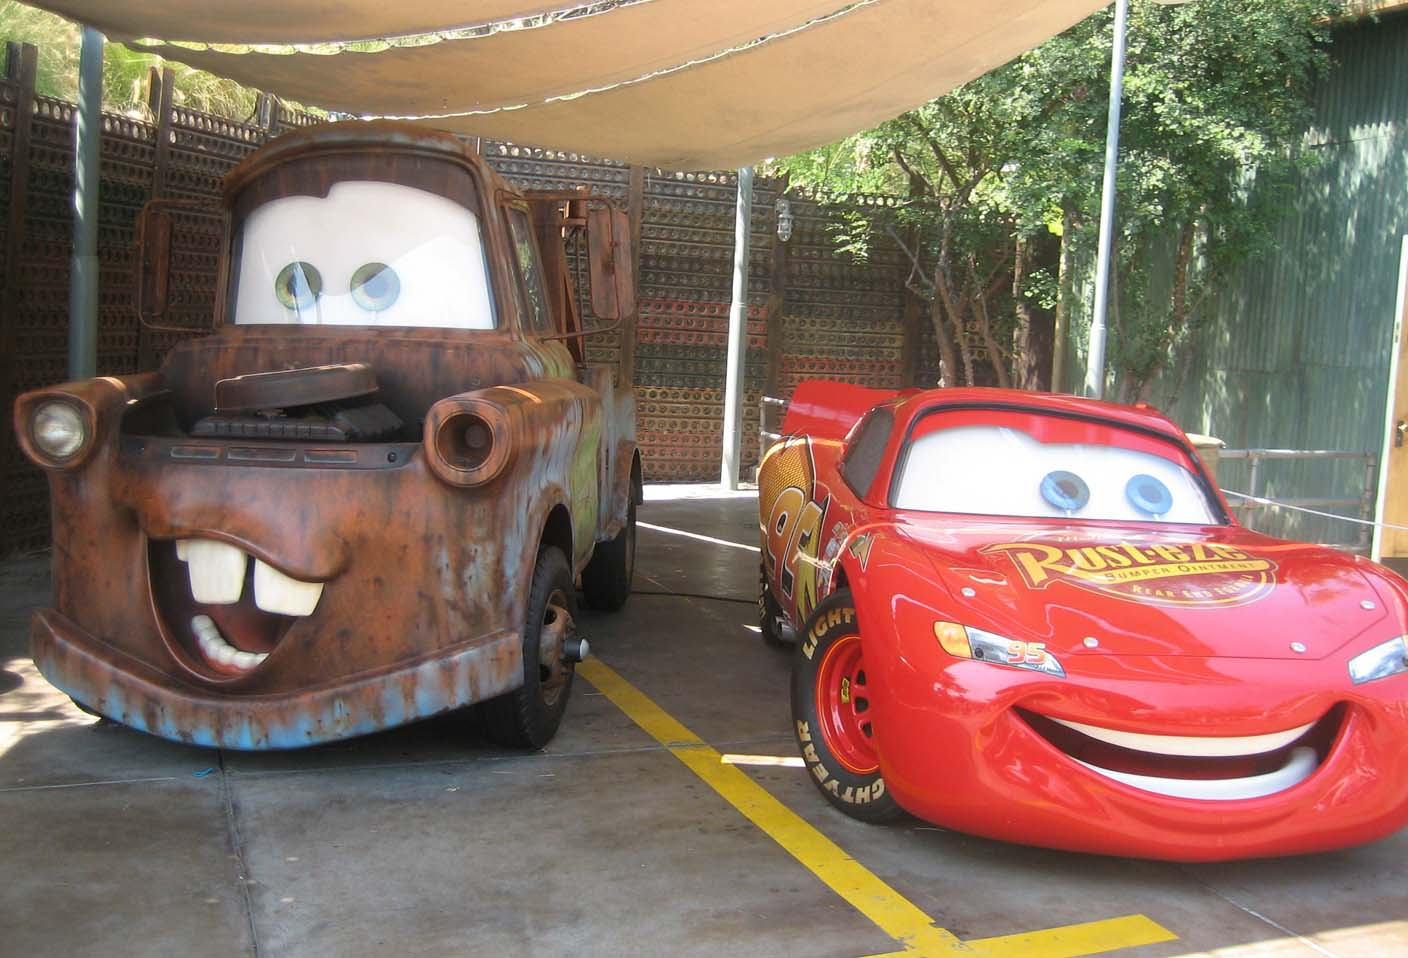 A Lightning McQueen Flash online racing game based on the DisneyPixar movie Cars  race against The King Chick Hicks Boost and Snot Rod